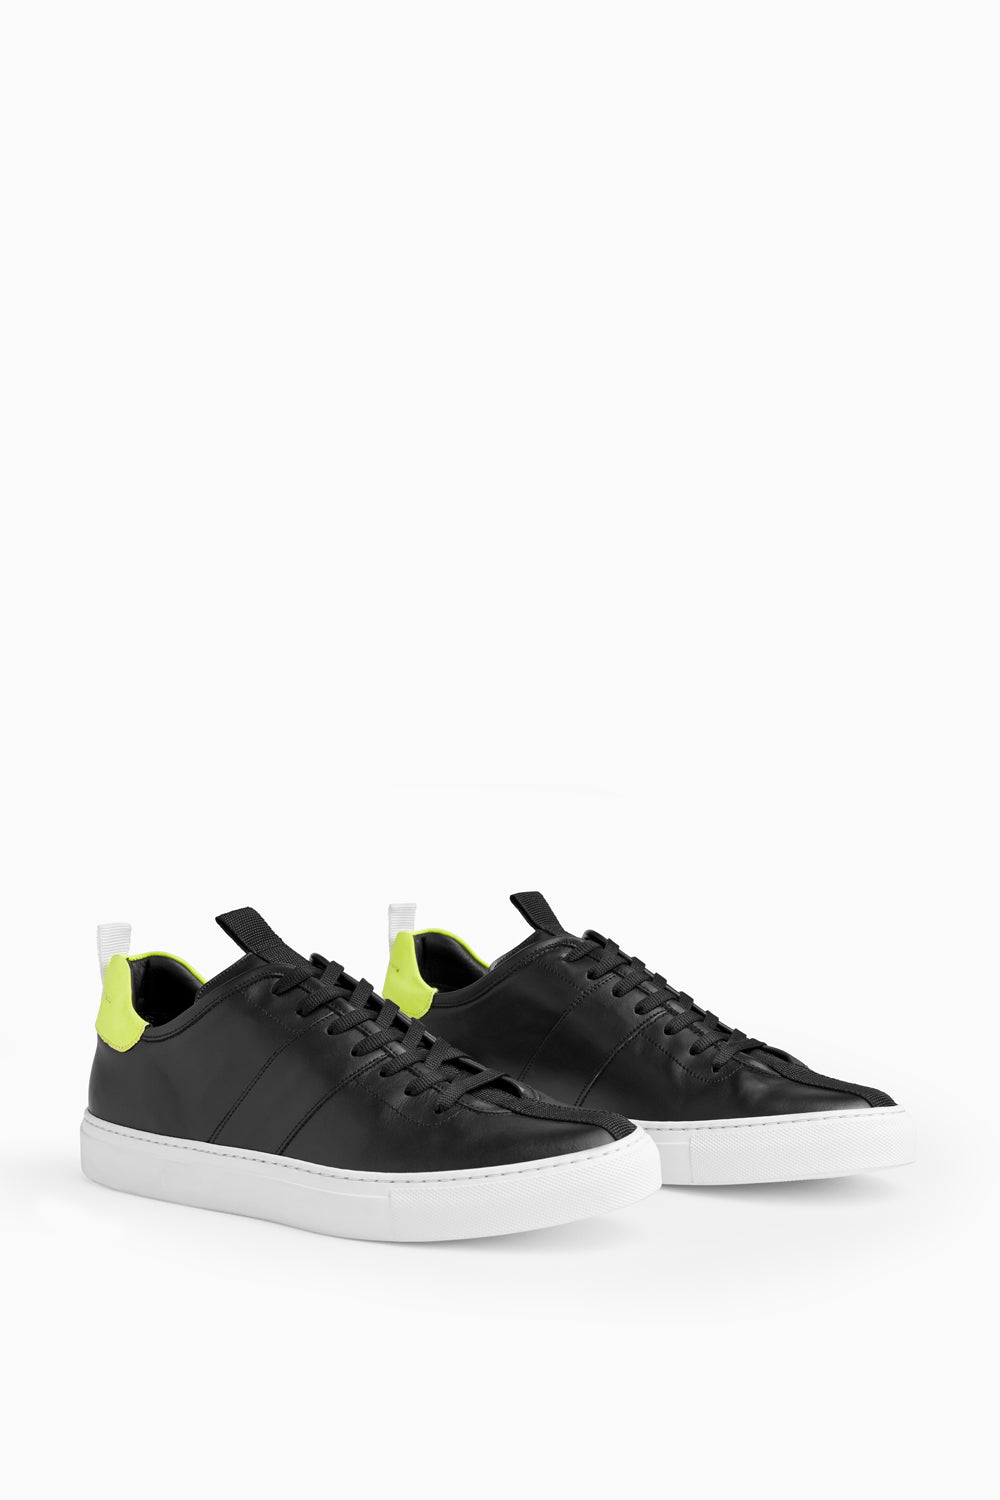 low roamer in black/neon yellow/white by daniel patrick